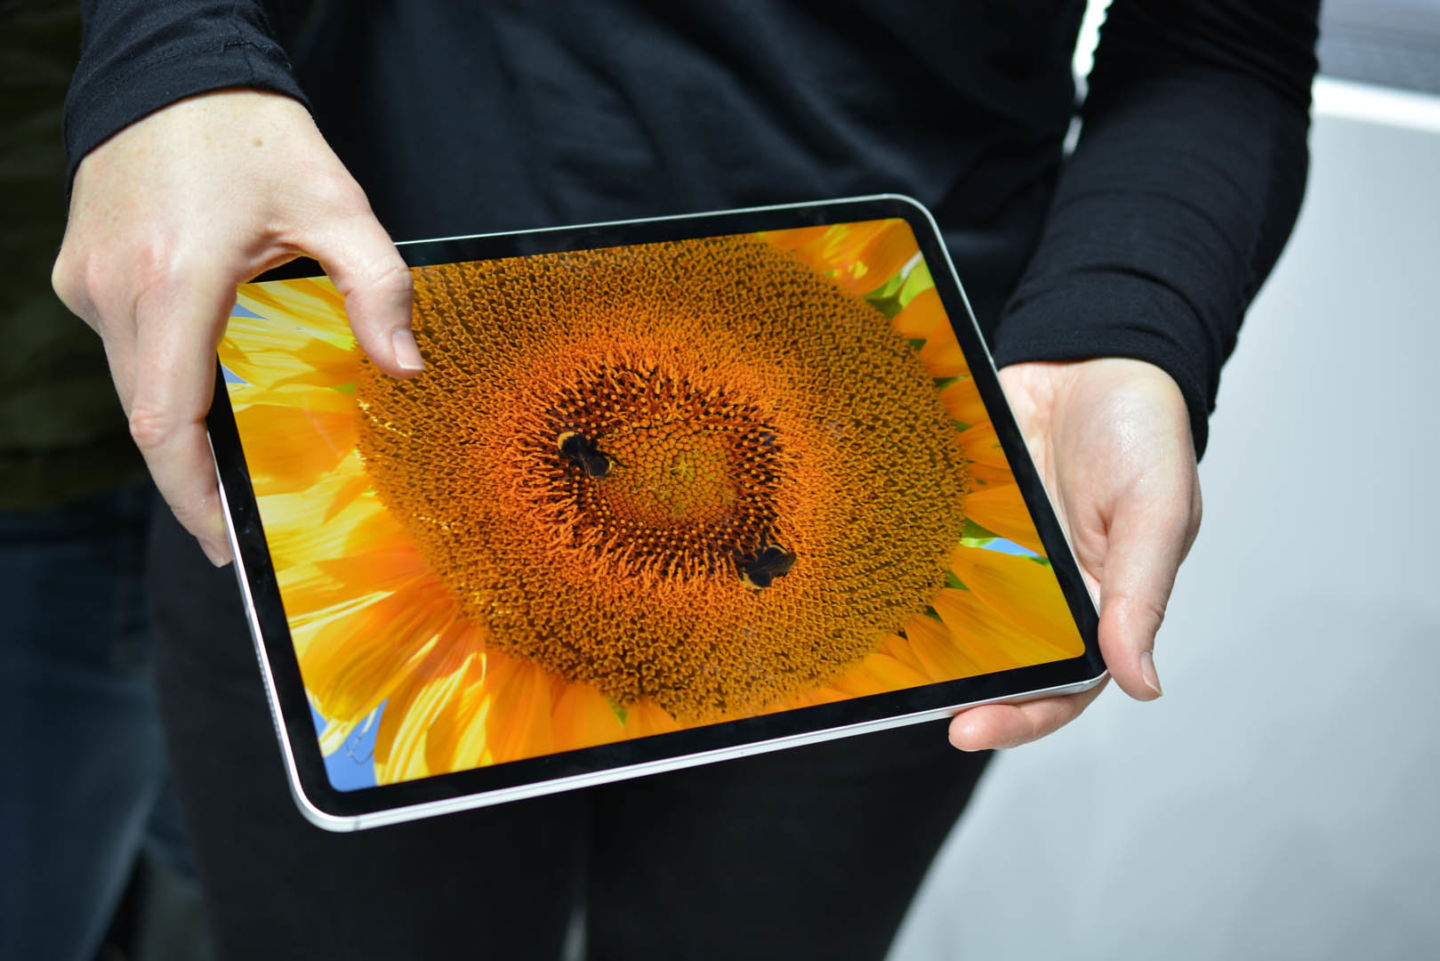 The iPad Pro on sale today isn't the latest model but is still powerful enough to be useful for the next several years.